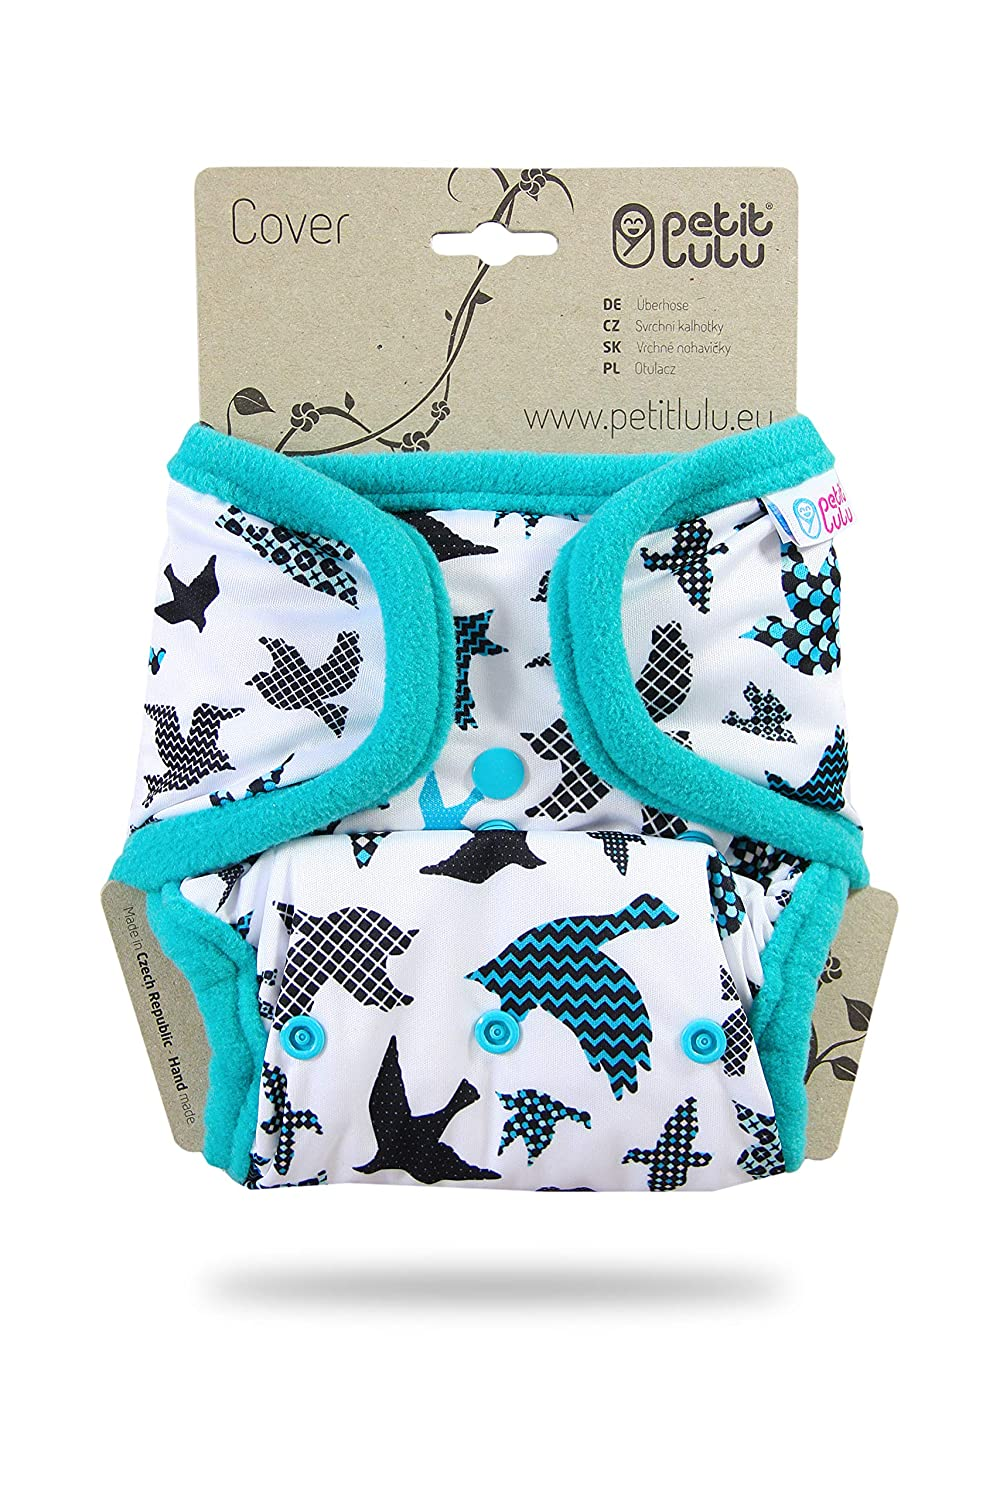 Snaps Waterproof Made in Europe One Size Reusable /& Washable Petit Lulu Diaper Wrap Forest Animals